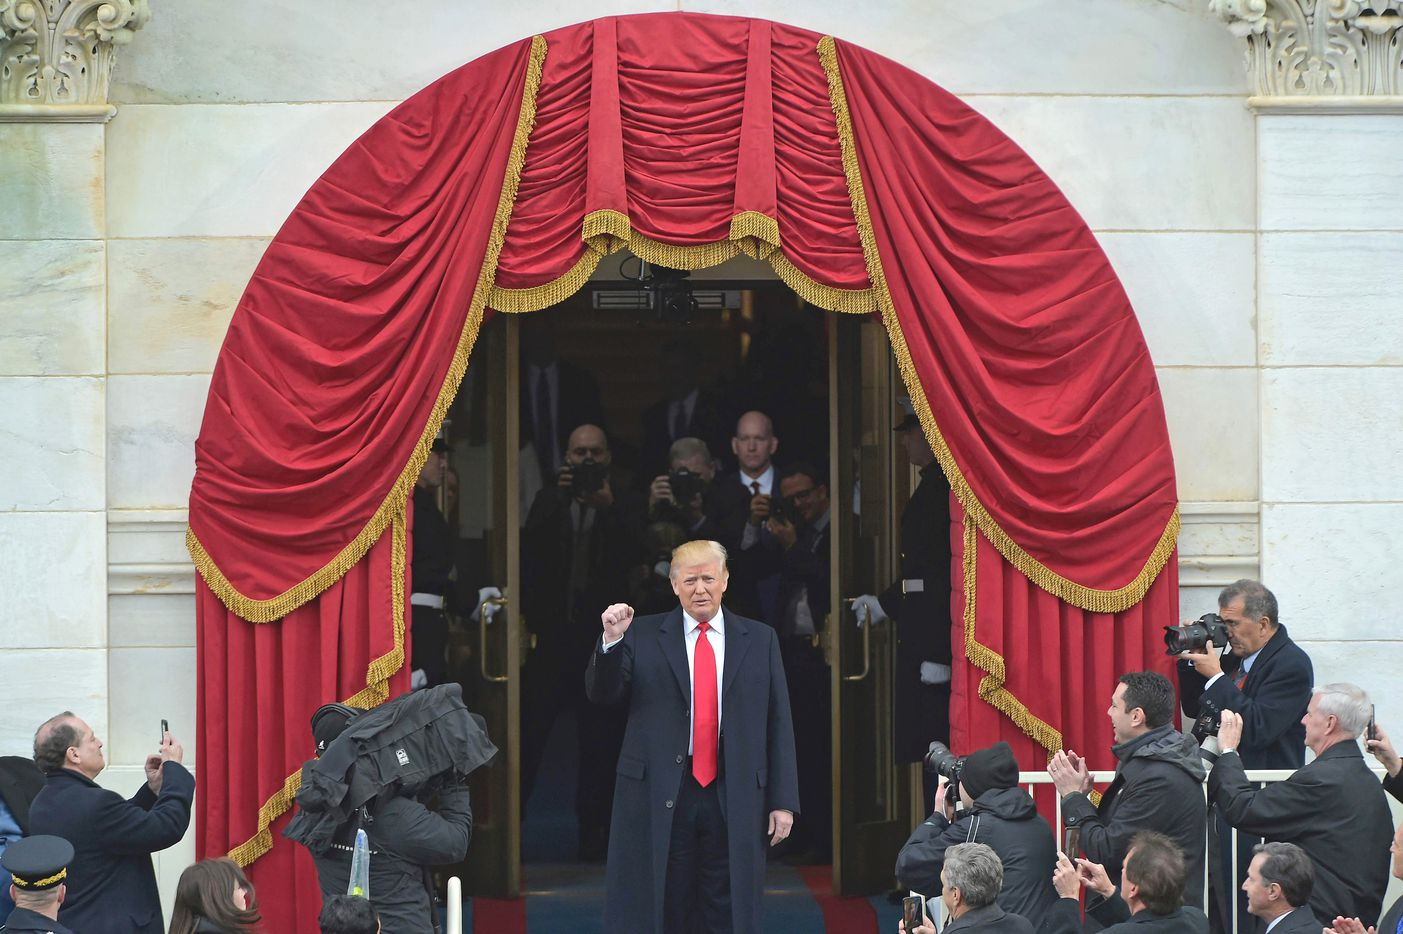 President-elect Donald Trump acknowledges guests as he arrives on the platform at the US Capitol in Washington, DC, on January 20, 2017, during his swearing-in ceremony. /